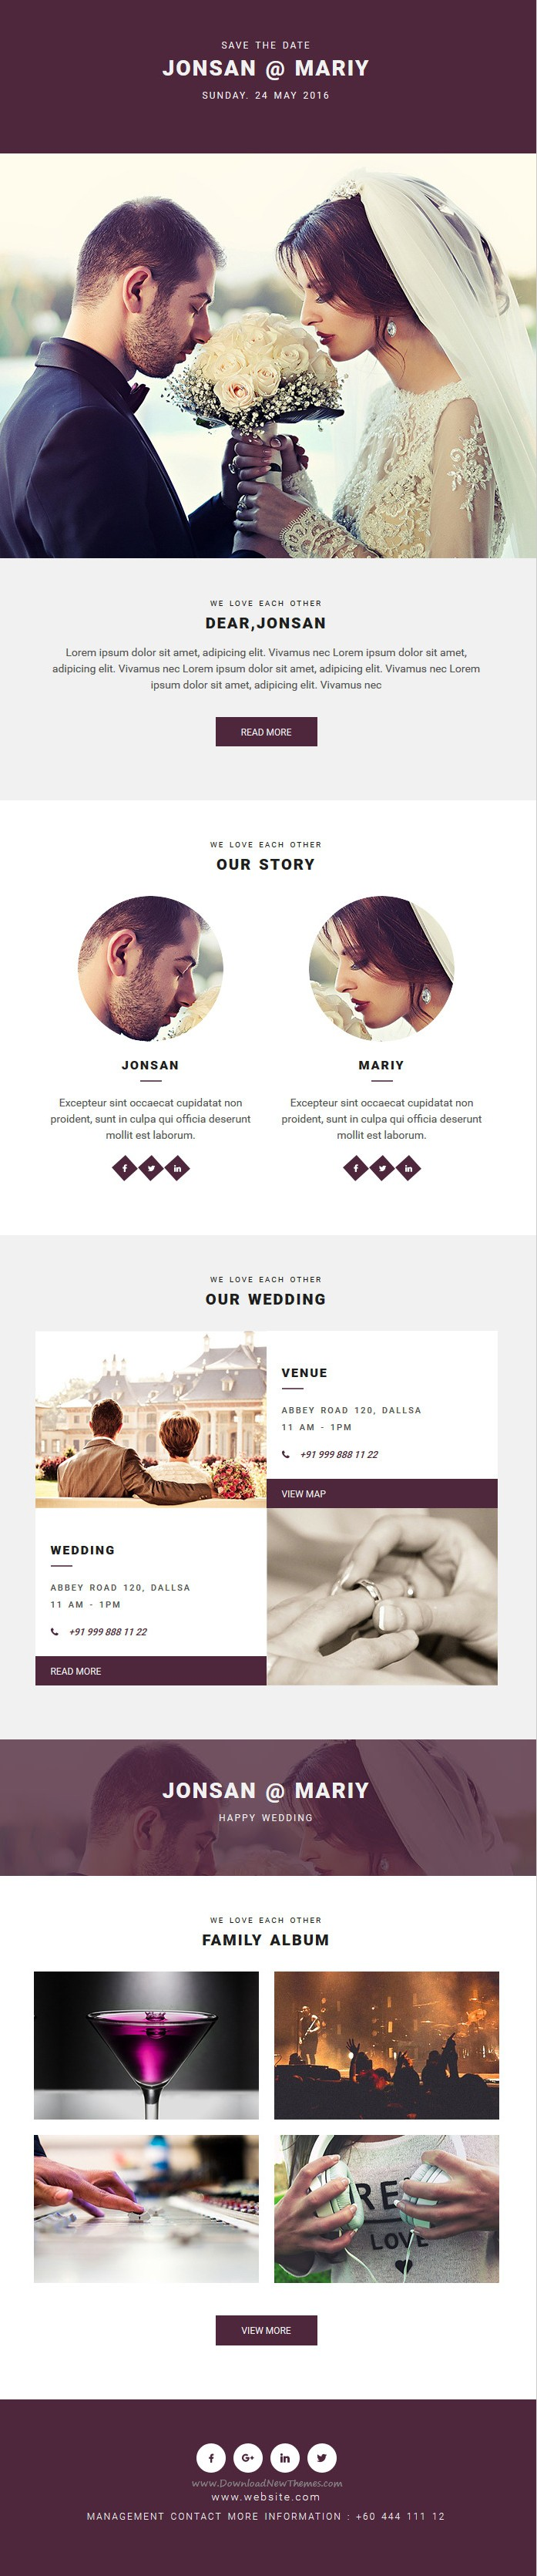 wedding invitation template themeforest%0A Buy WeddingEmail Template with MailChimp and Campaign Monitor Editable    Stampready Builder by rsacreative on ThemeForest  WeddingEmail Template  with